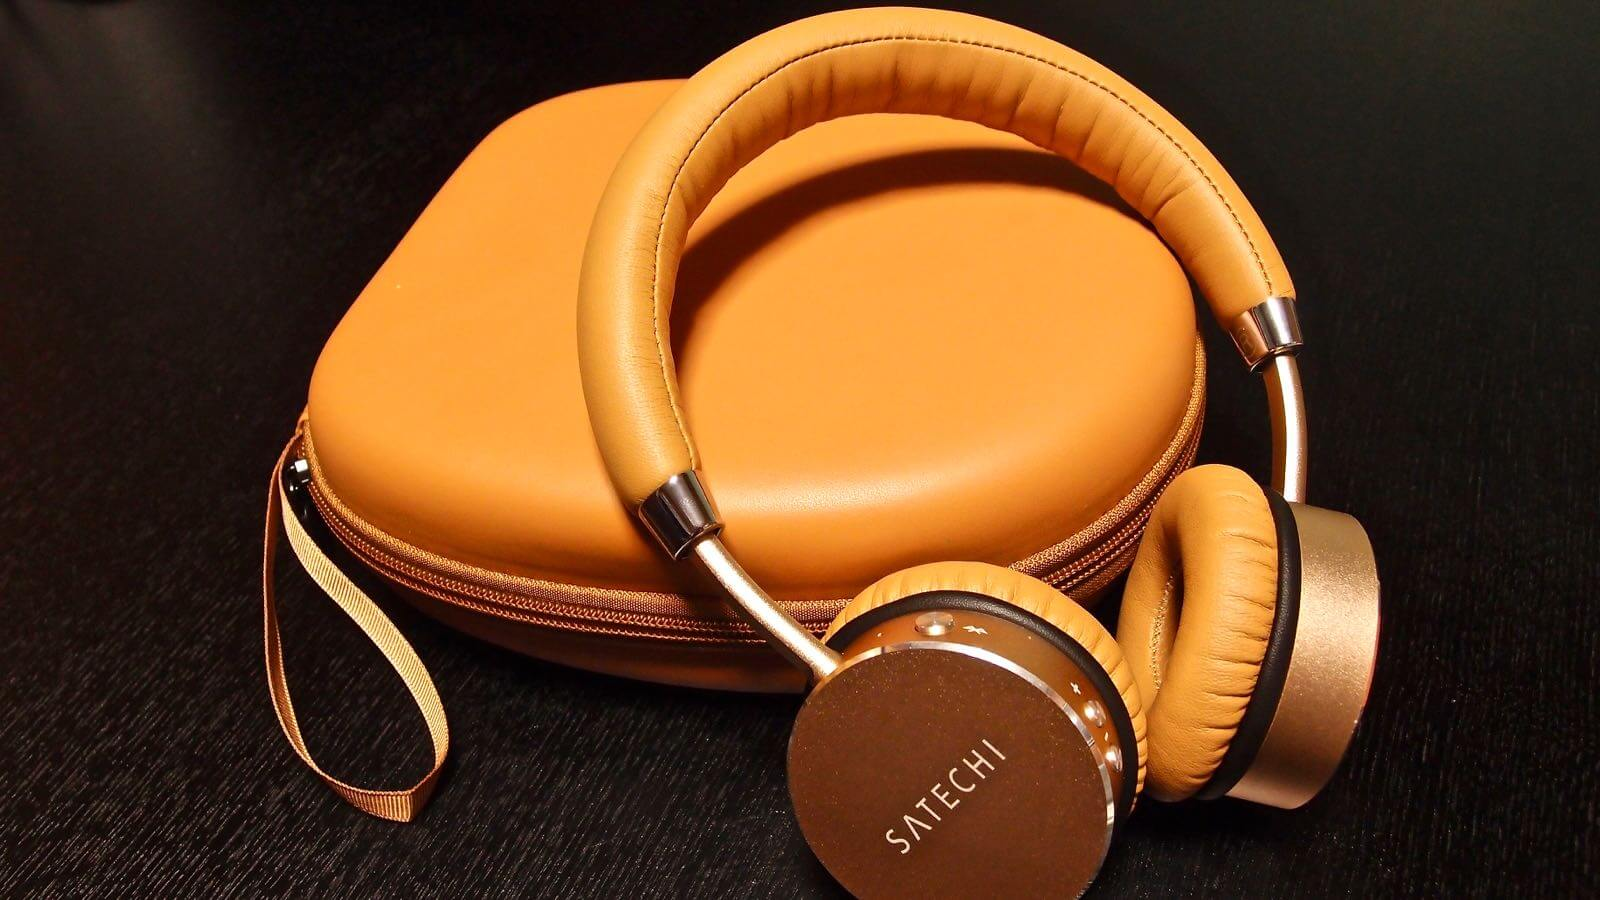 0159 Satechi s Headphones Hard Case Review 10